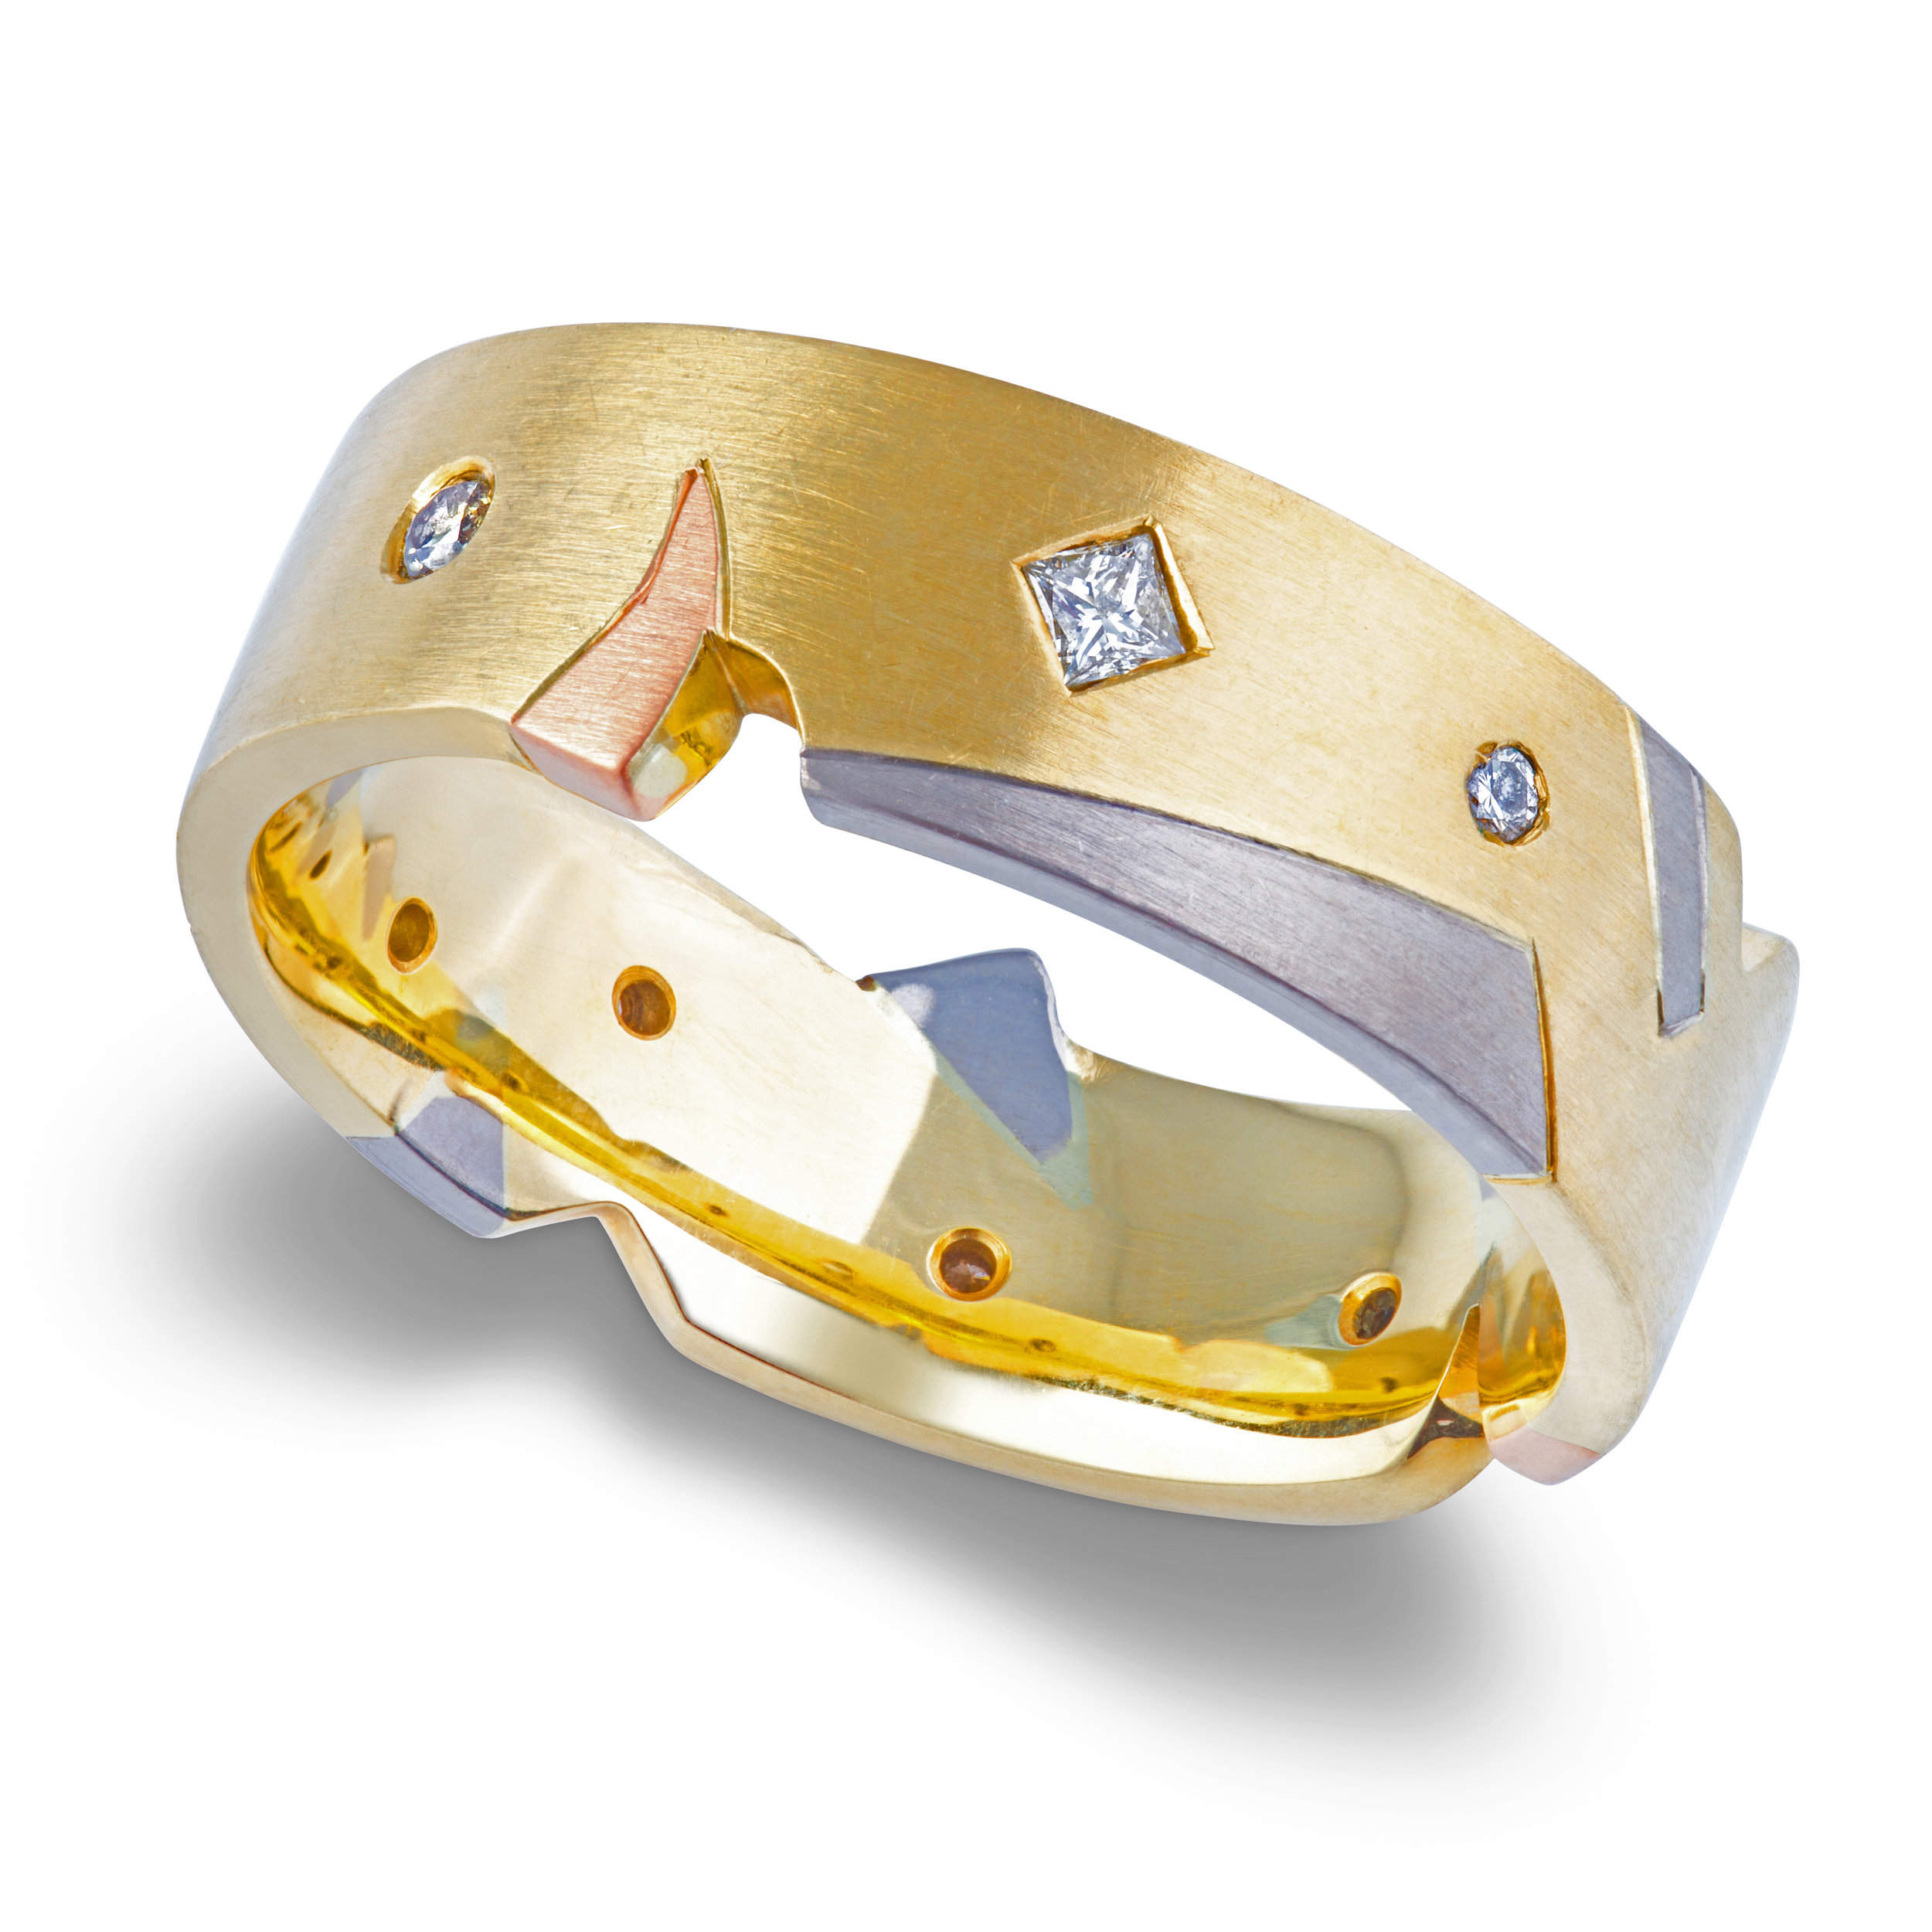 Bespoke 18ct yellow, rose,white gold and diamond gents wedding ring commission